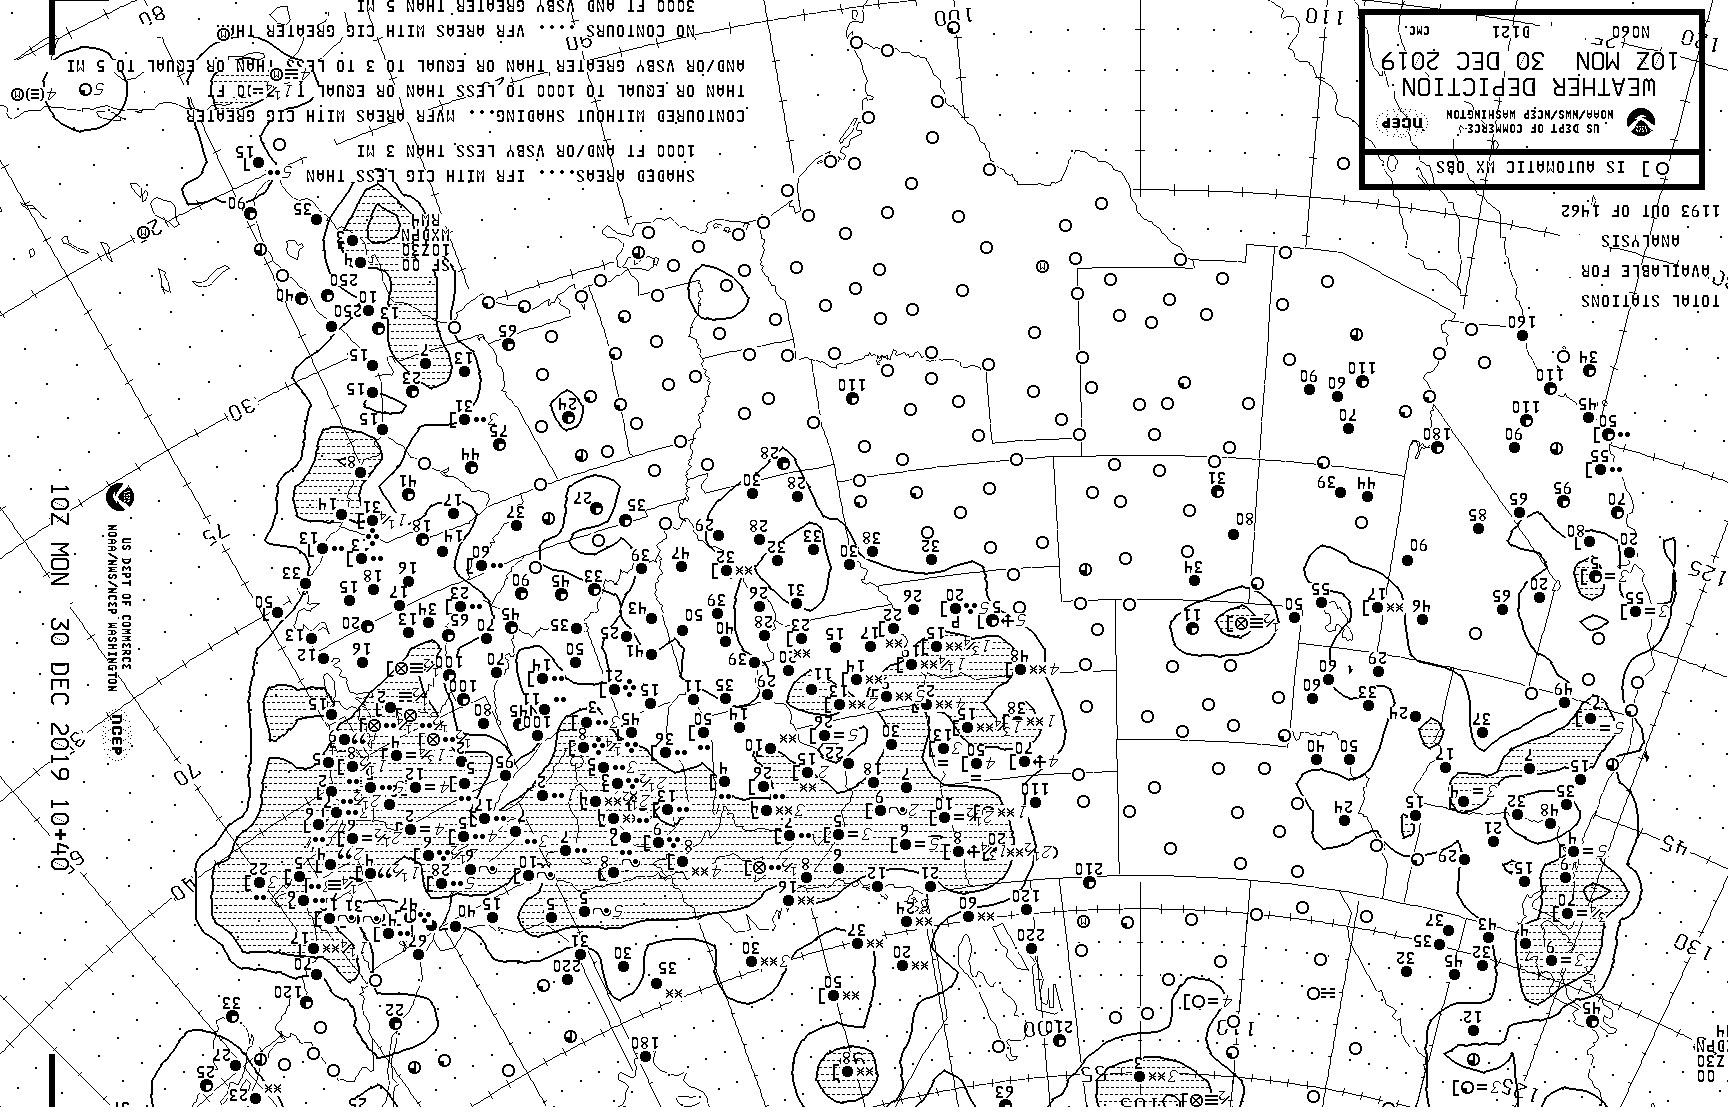 NWS Weather Depiction / Significant Weather Fax Charts